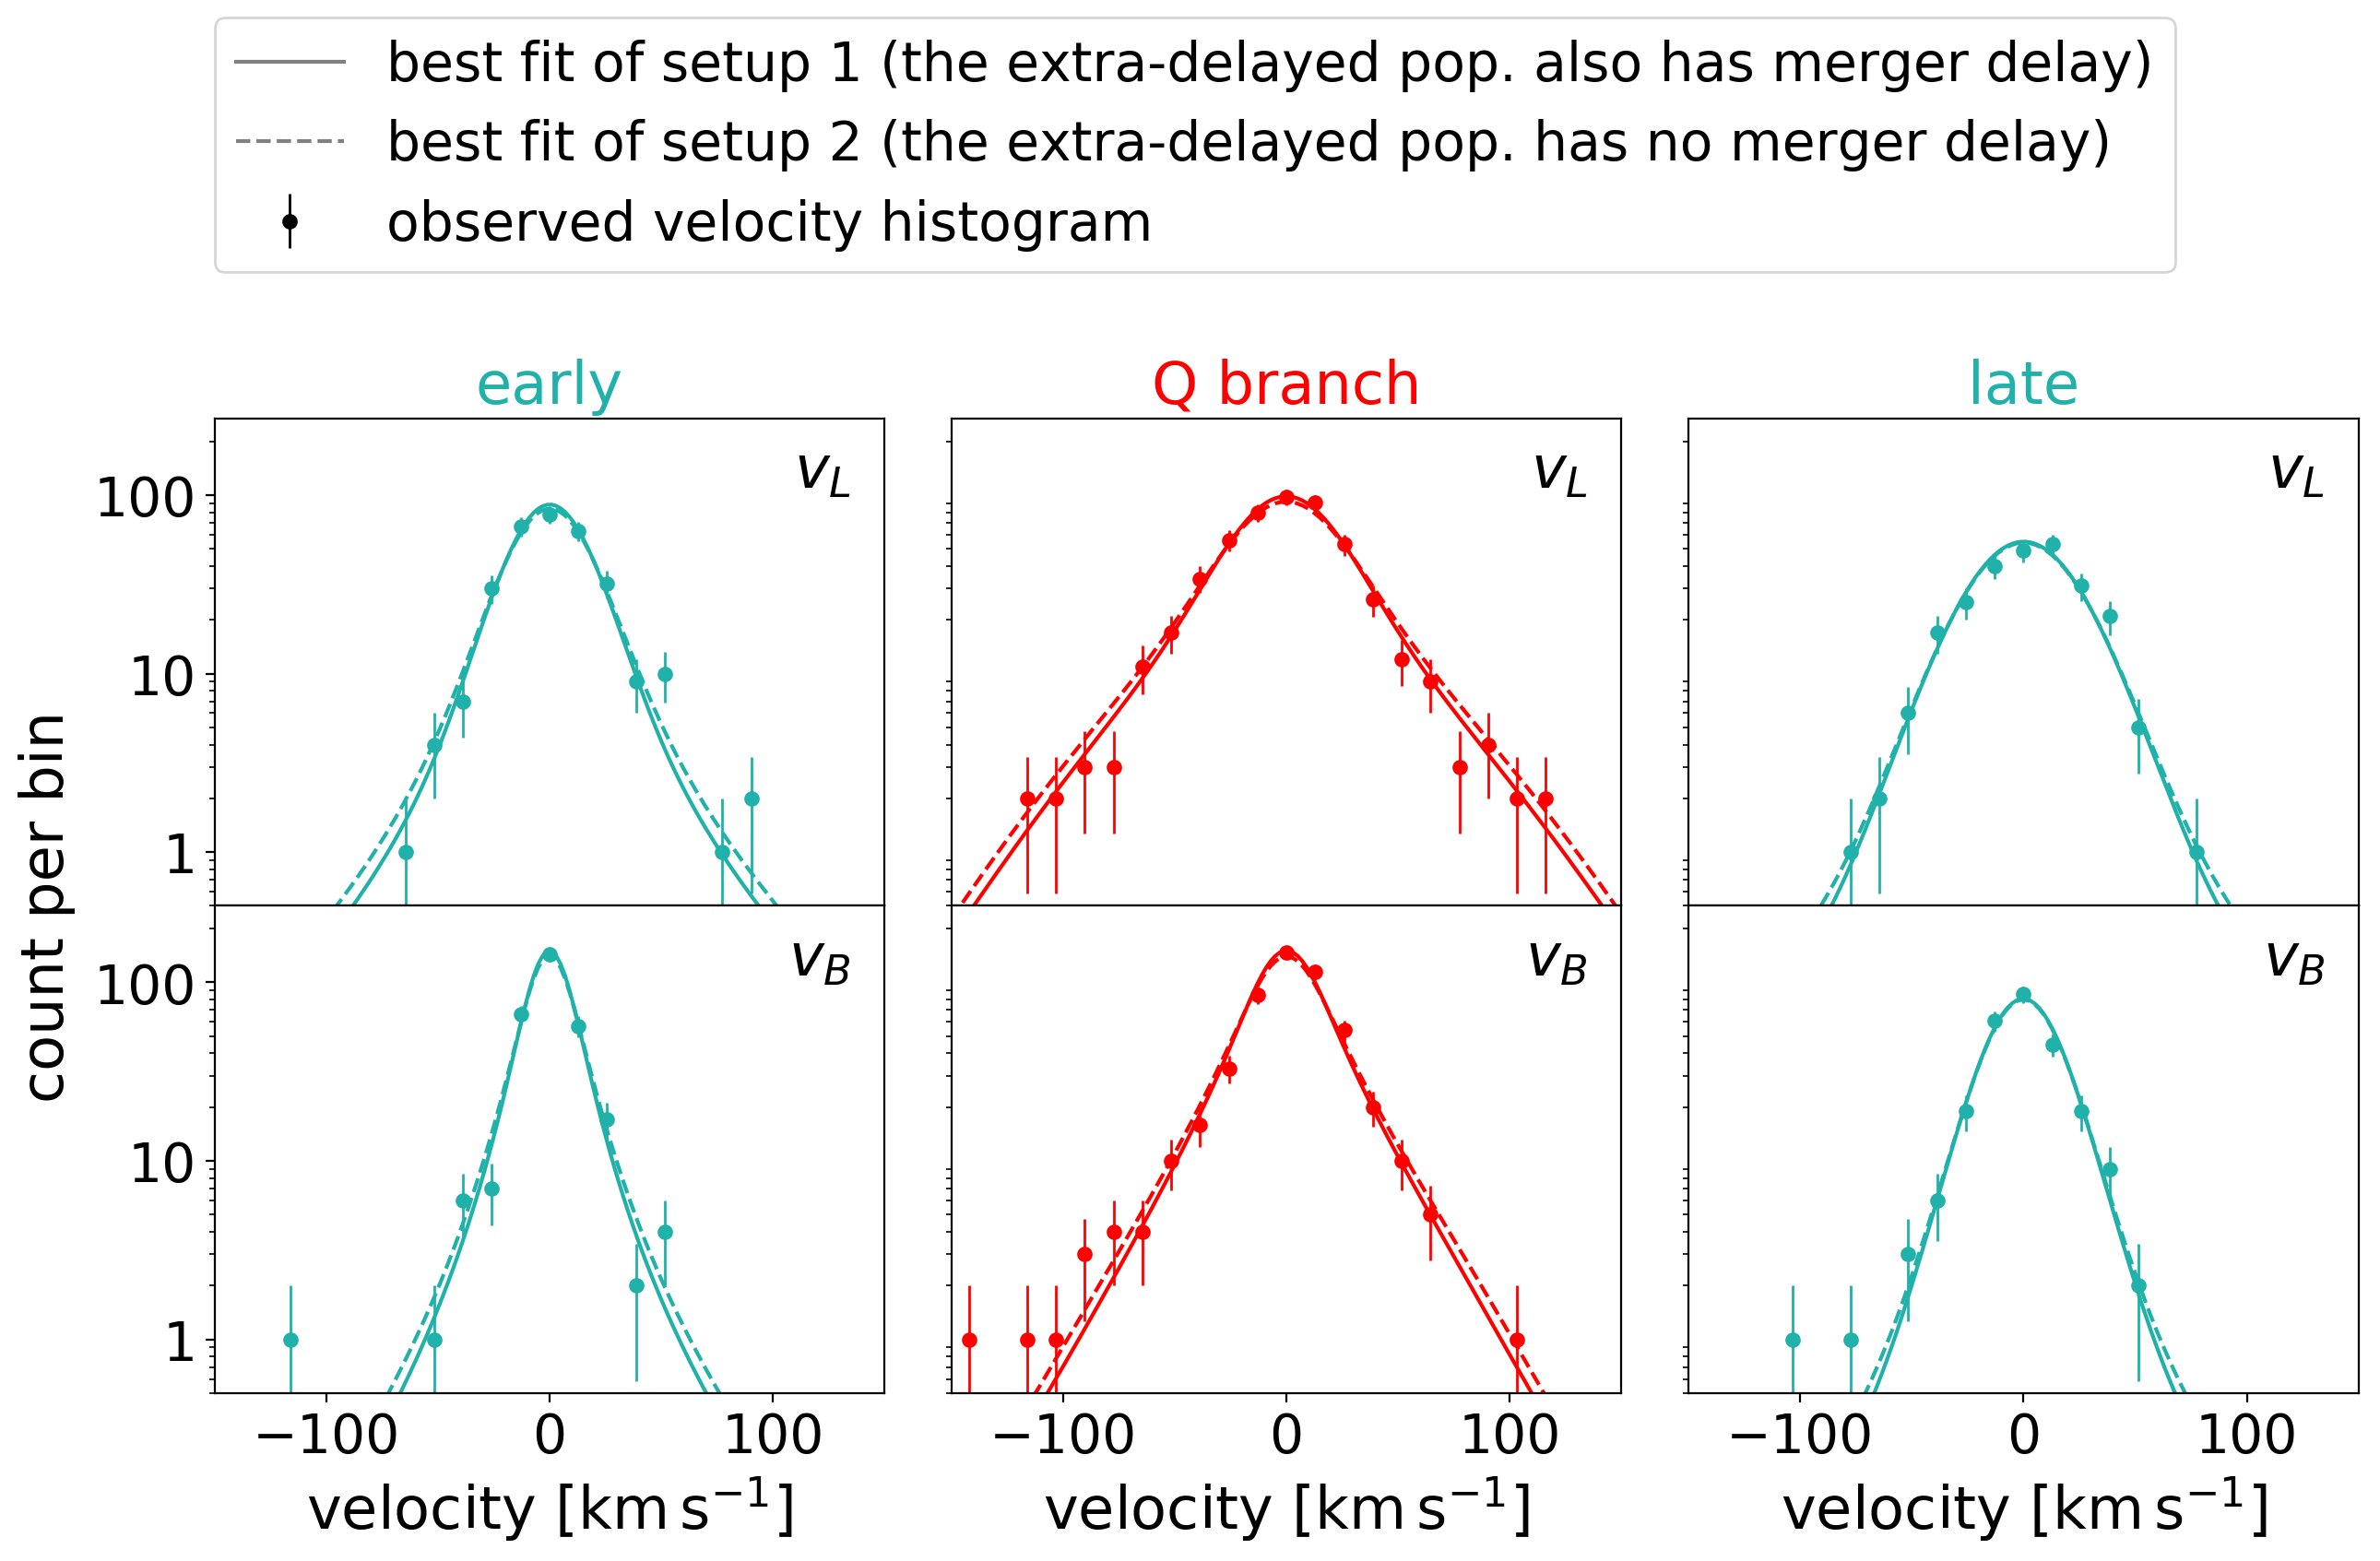 The goodness of fitting: a comparison between the observed distributions of transverse velocity and the model predictions under the best-fitting parameters.